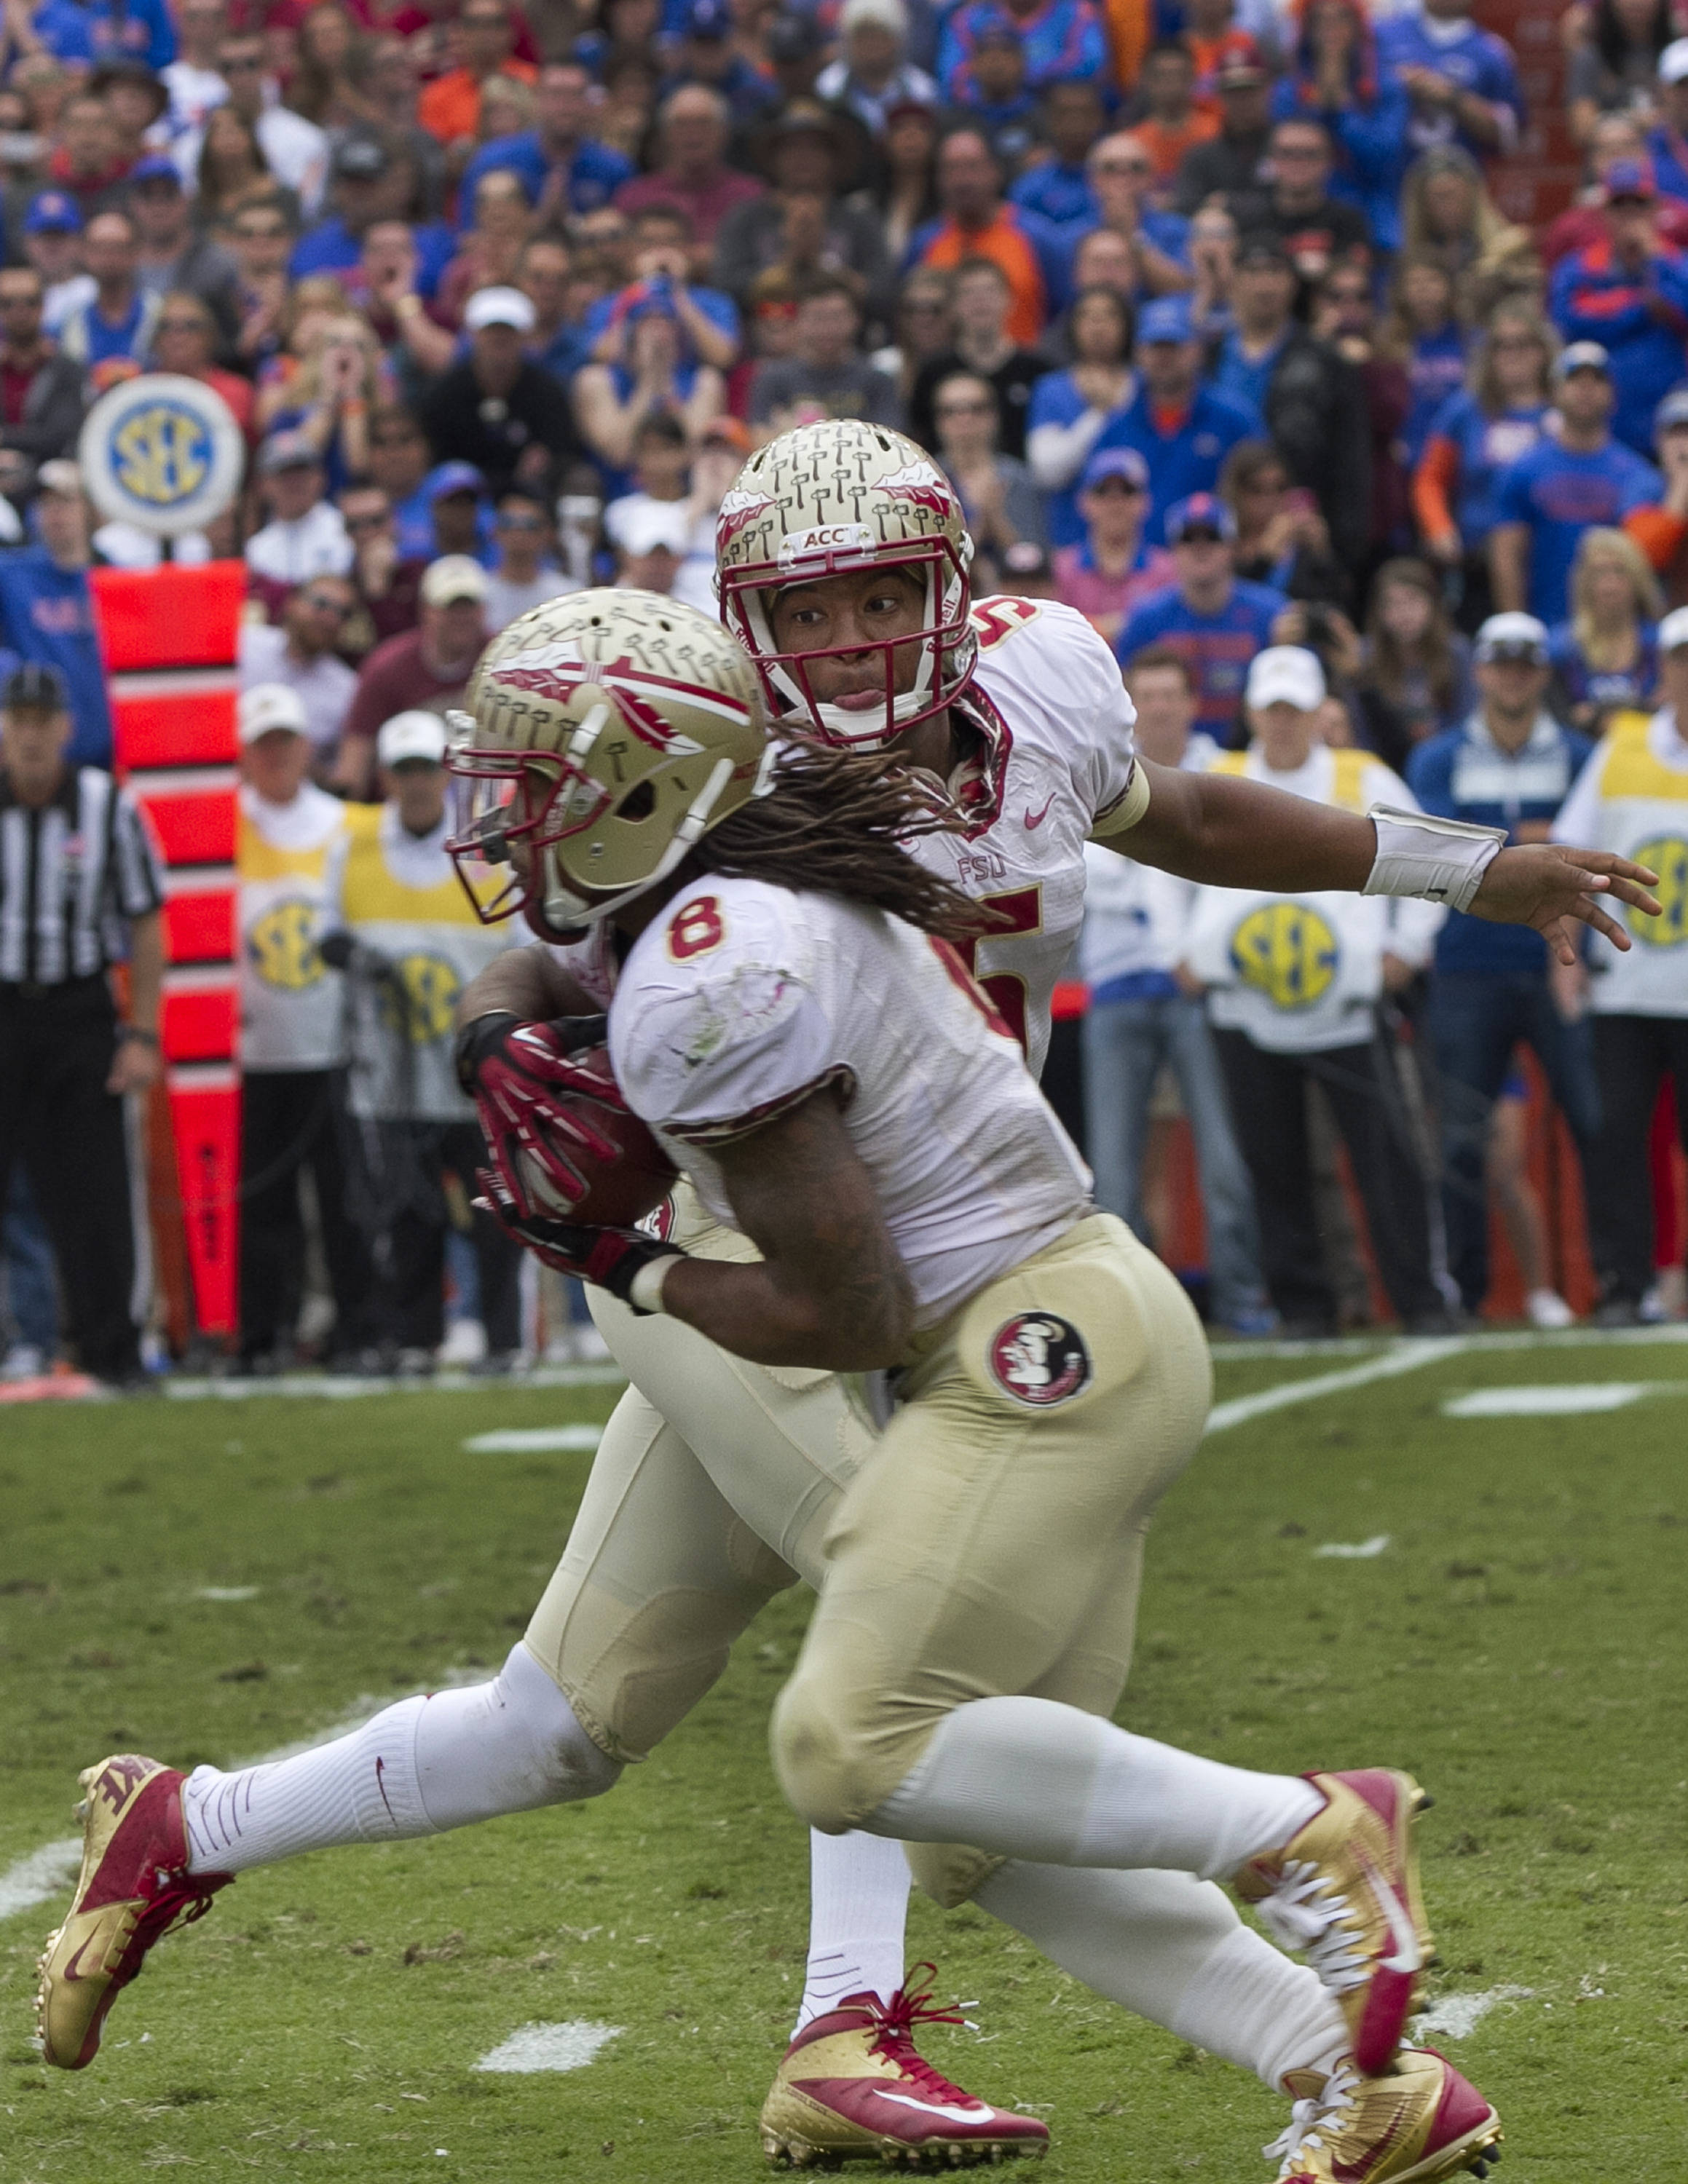 Jameis Winston (5) handing off to Devonta Freeman (8), FSU vs Florida, 11-30-13,  (Photo by Steve Musco)